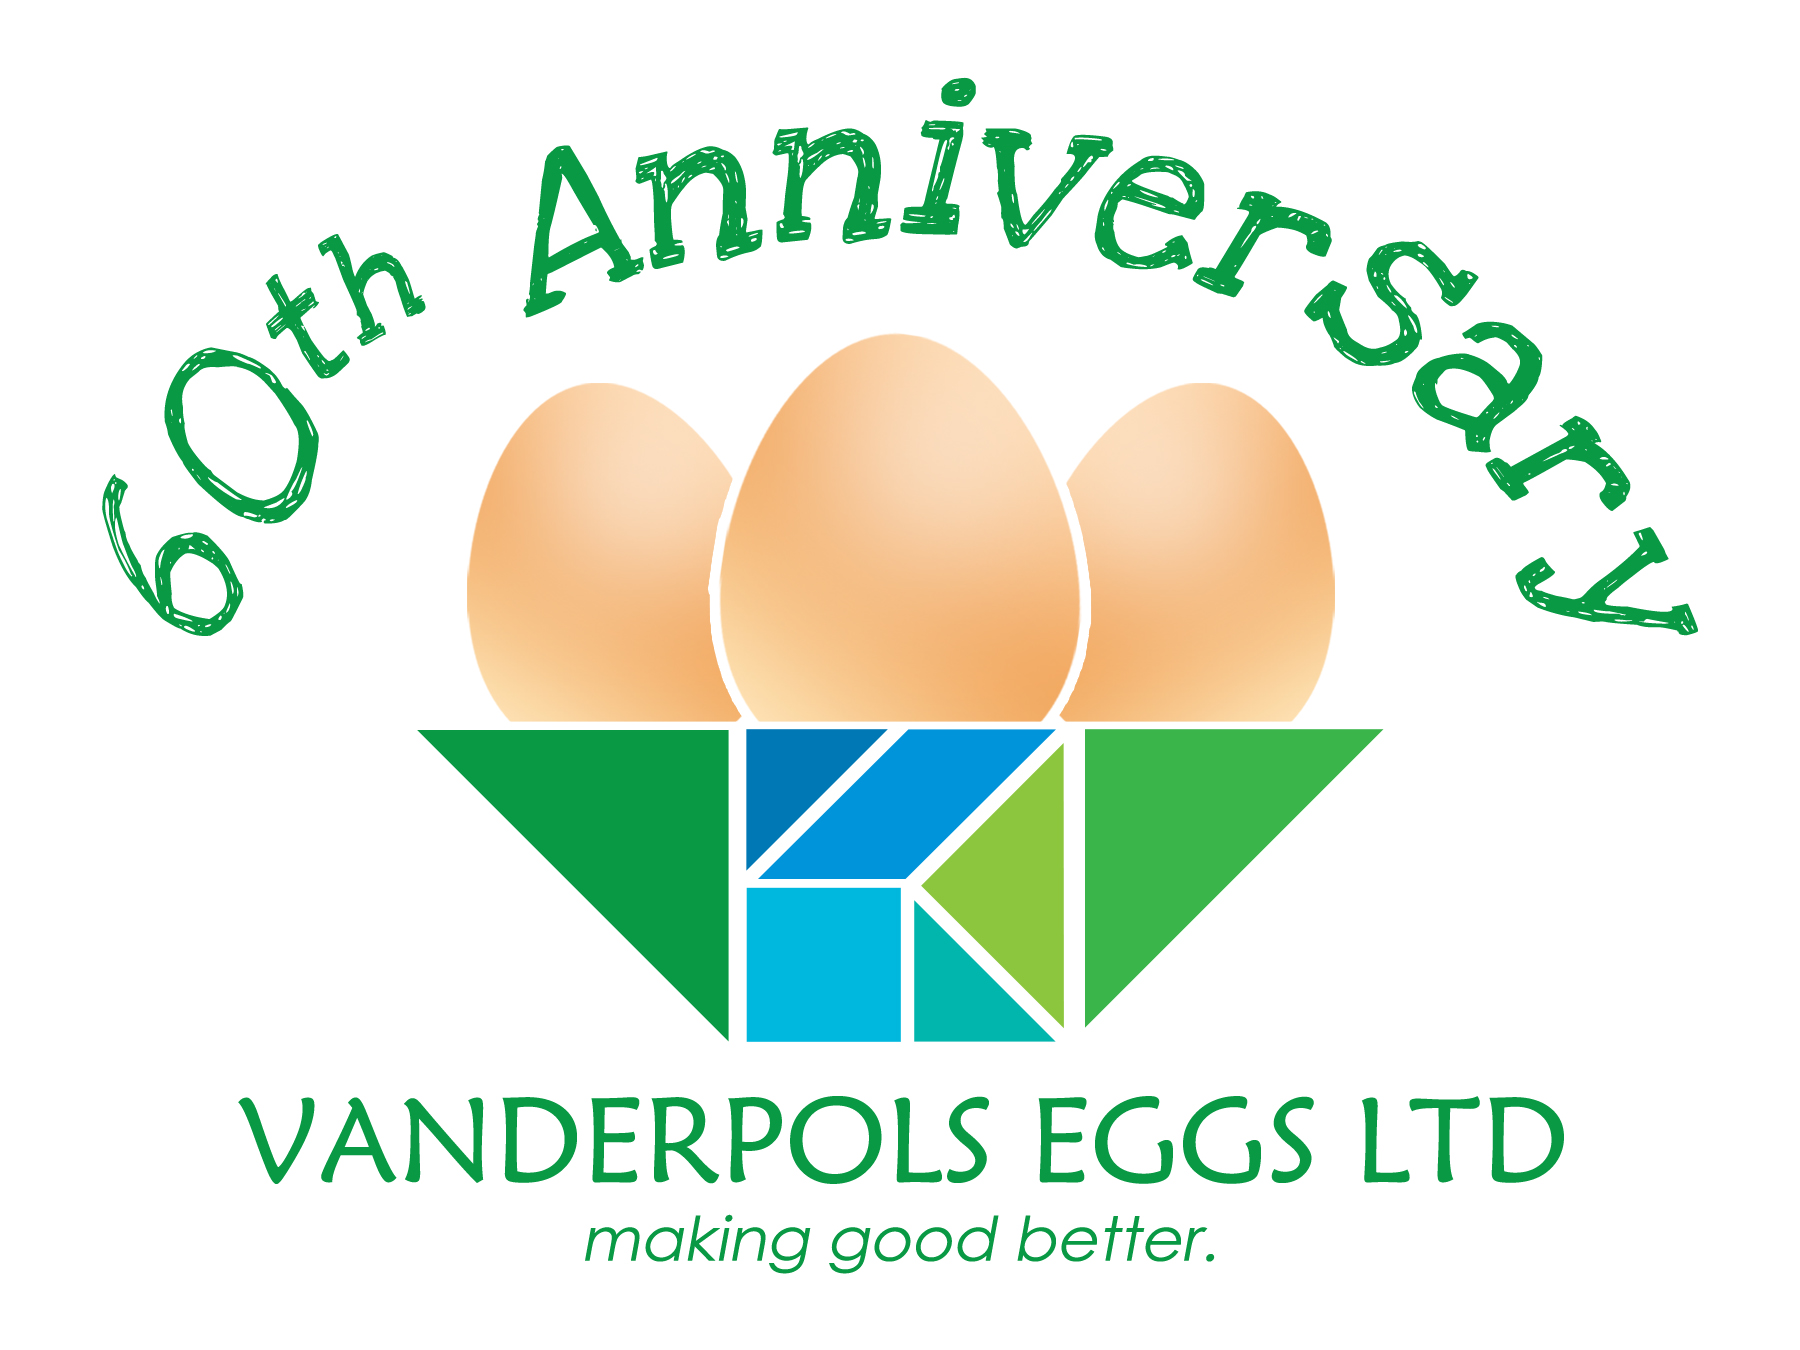 Logo Design by Private User - Entry No. 14 in the Logo Design Contest Unique Logo Design Wanted for Vanderpols Eggs Ltd.